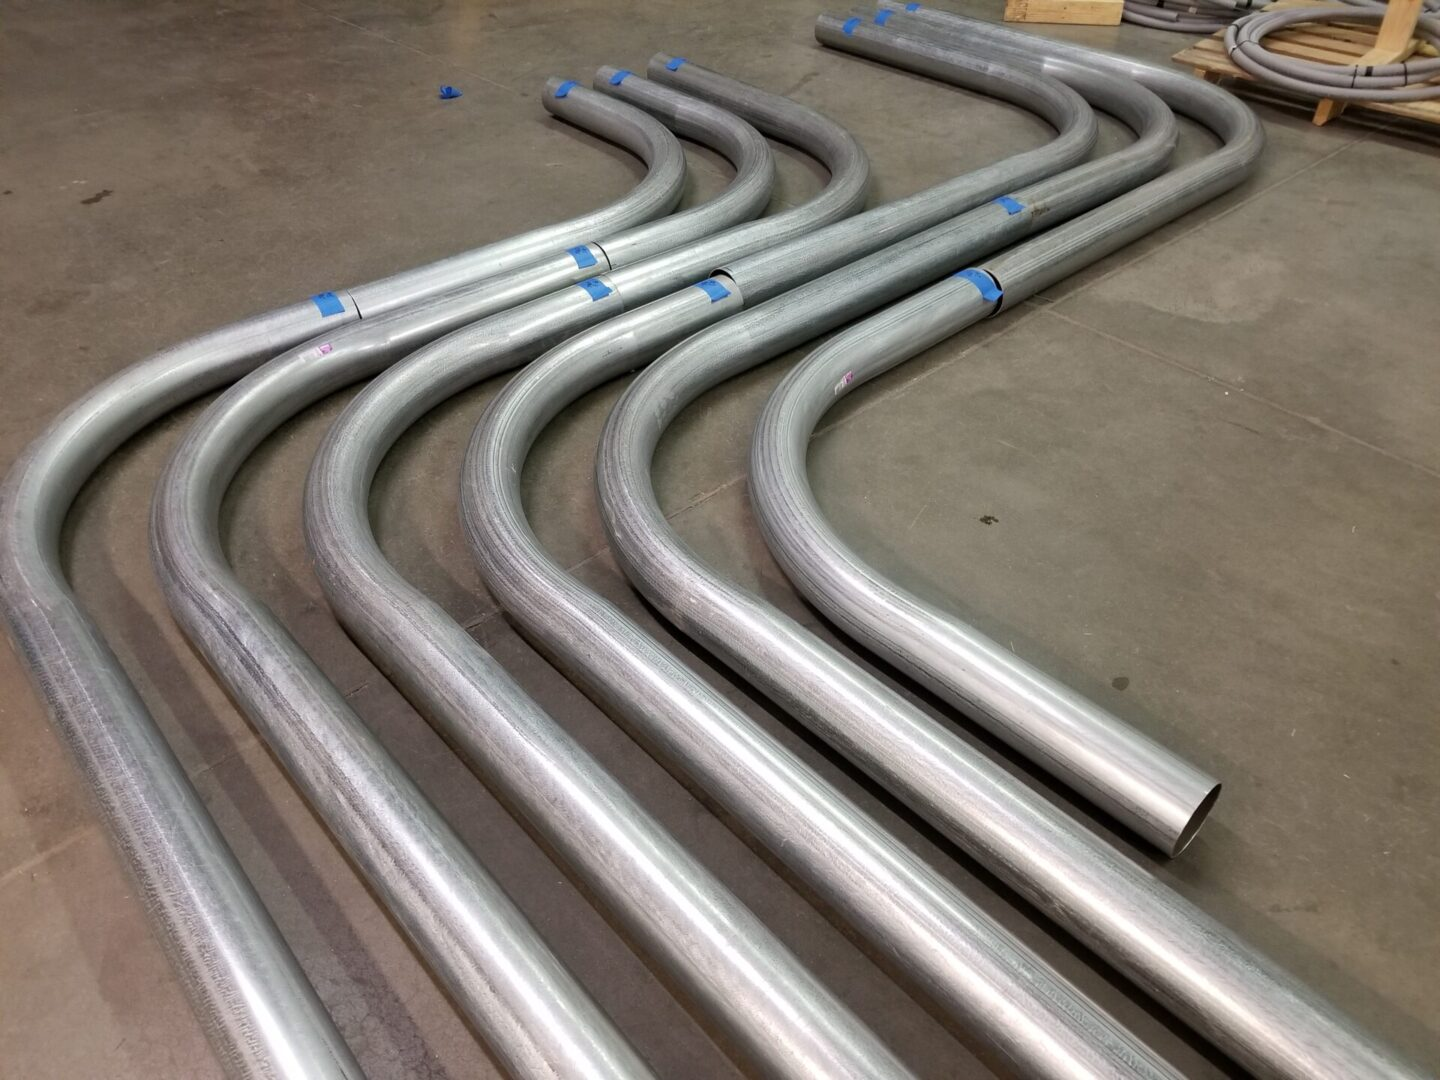 Curved metal pipes